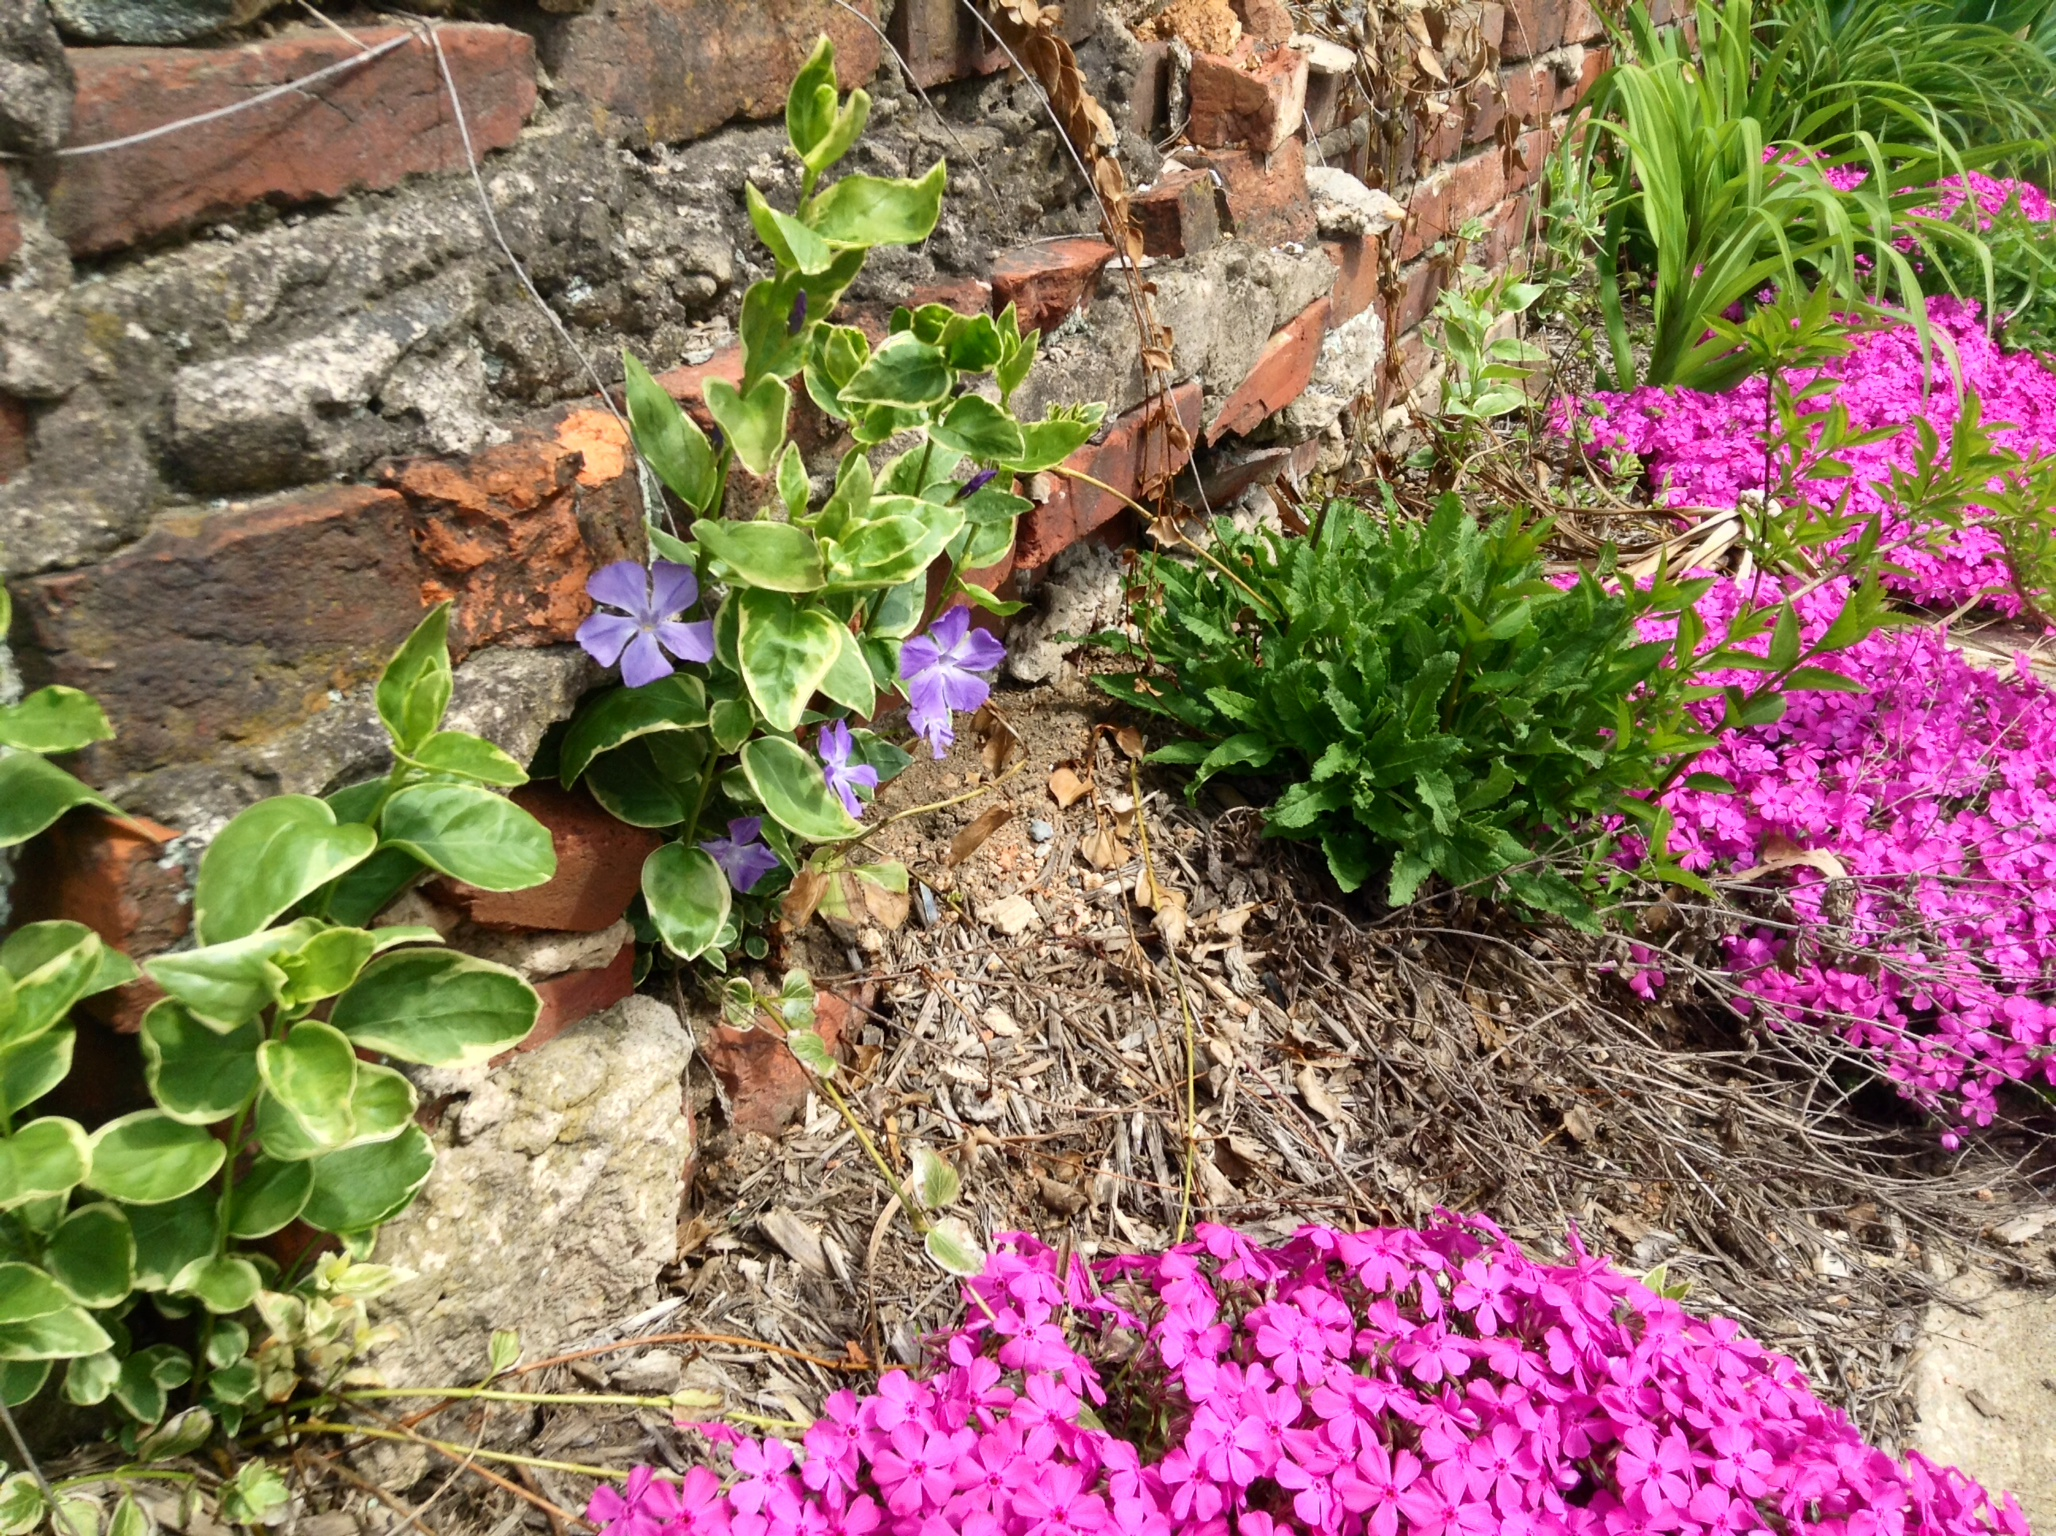 Flowers emerging on the side of a building in historic Ellicott City Maryland.